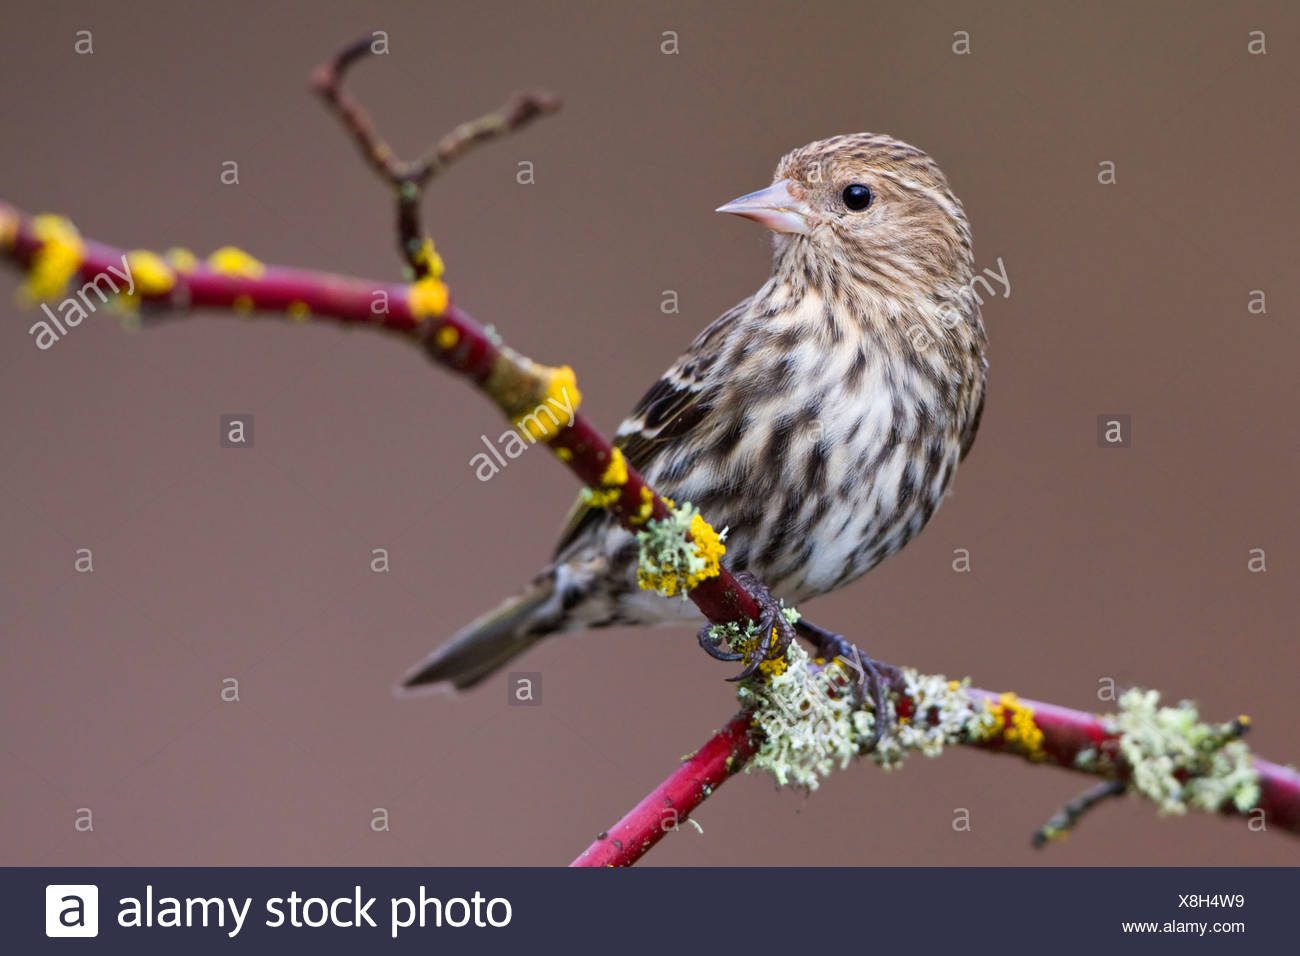 Pine siskin (Carduelis pinus) perched on a branch in Victoria, Vancouver Island, British Columbia, Canada - Stock Image